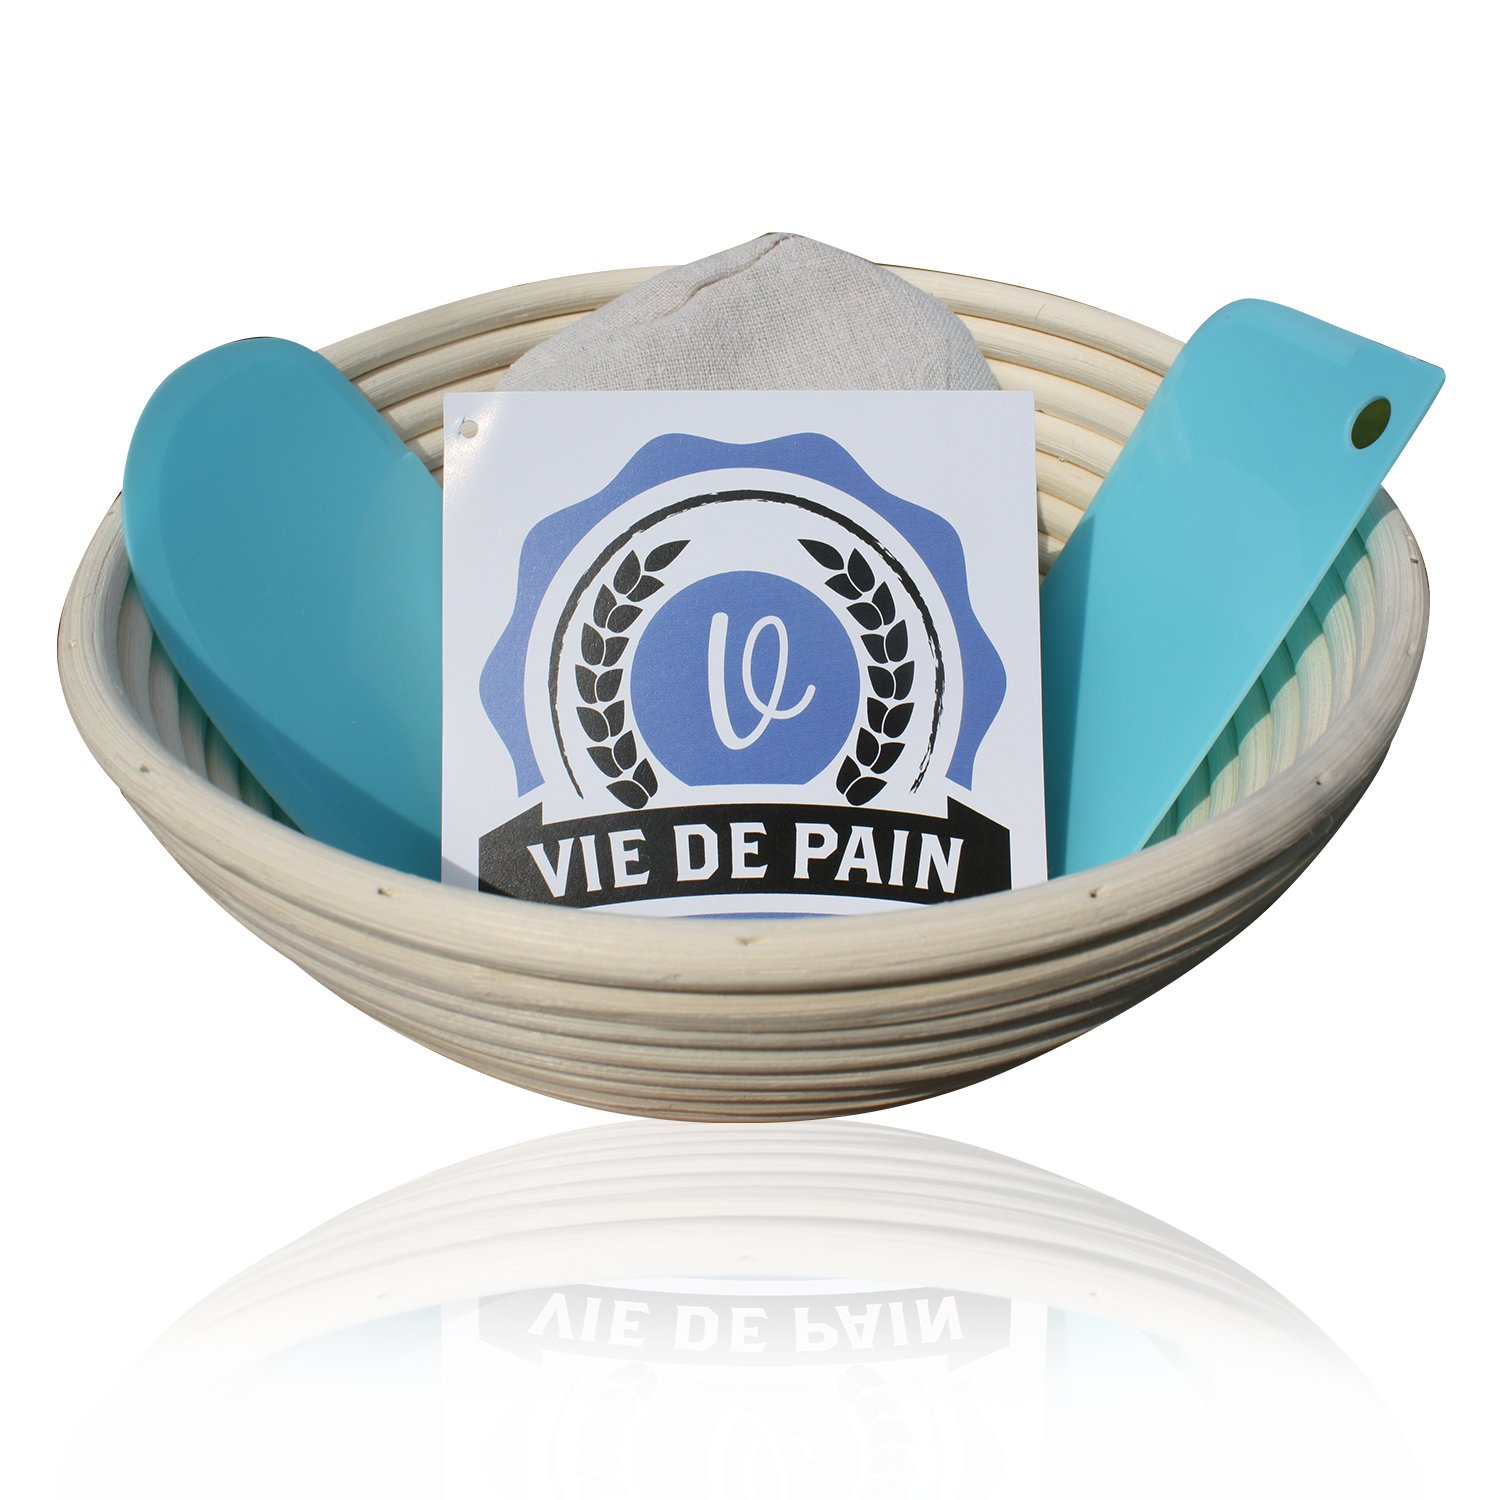 9 inch Round Banneton Bread Proofing Basket Set- Professional Brotform with Linen Liner and 2 Dough Scrapers- Perfect for Rising Sourdough, Boules and Other Artisan Bread Varieties! Vie De Pain